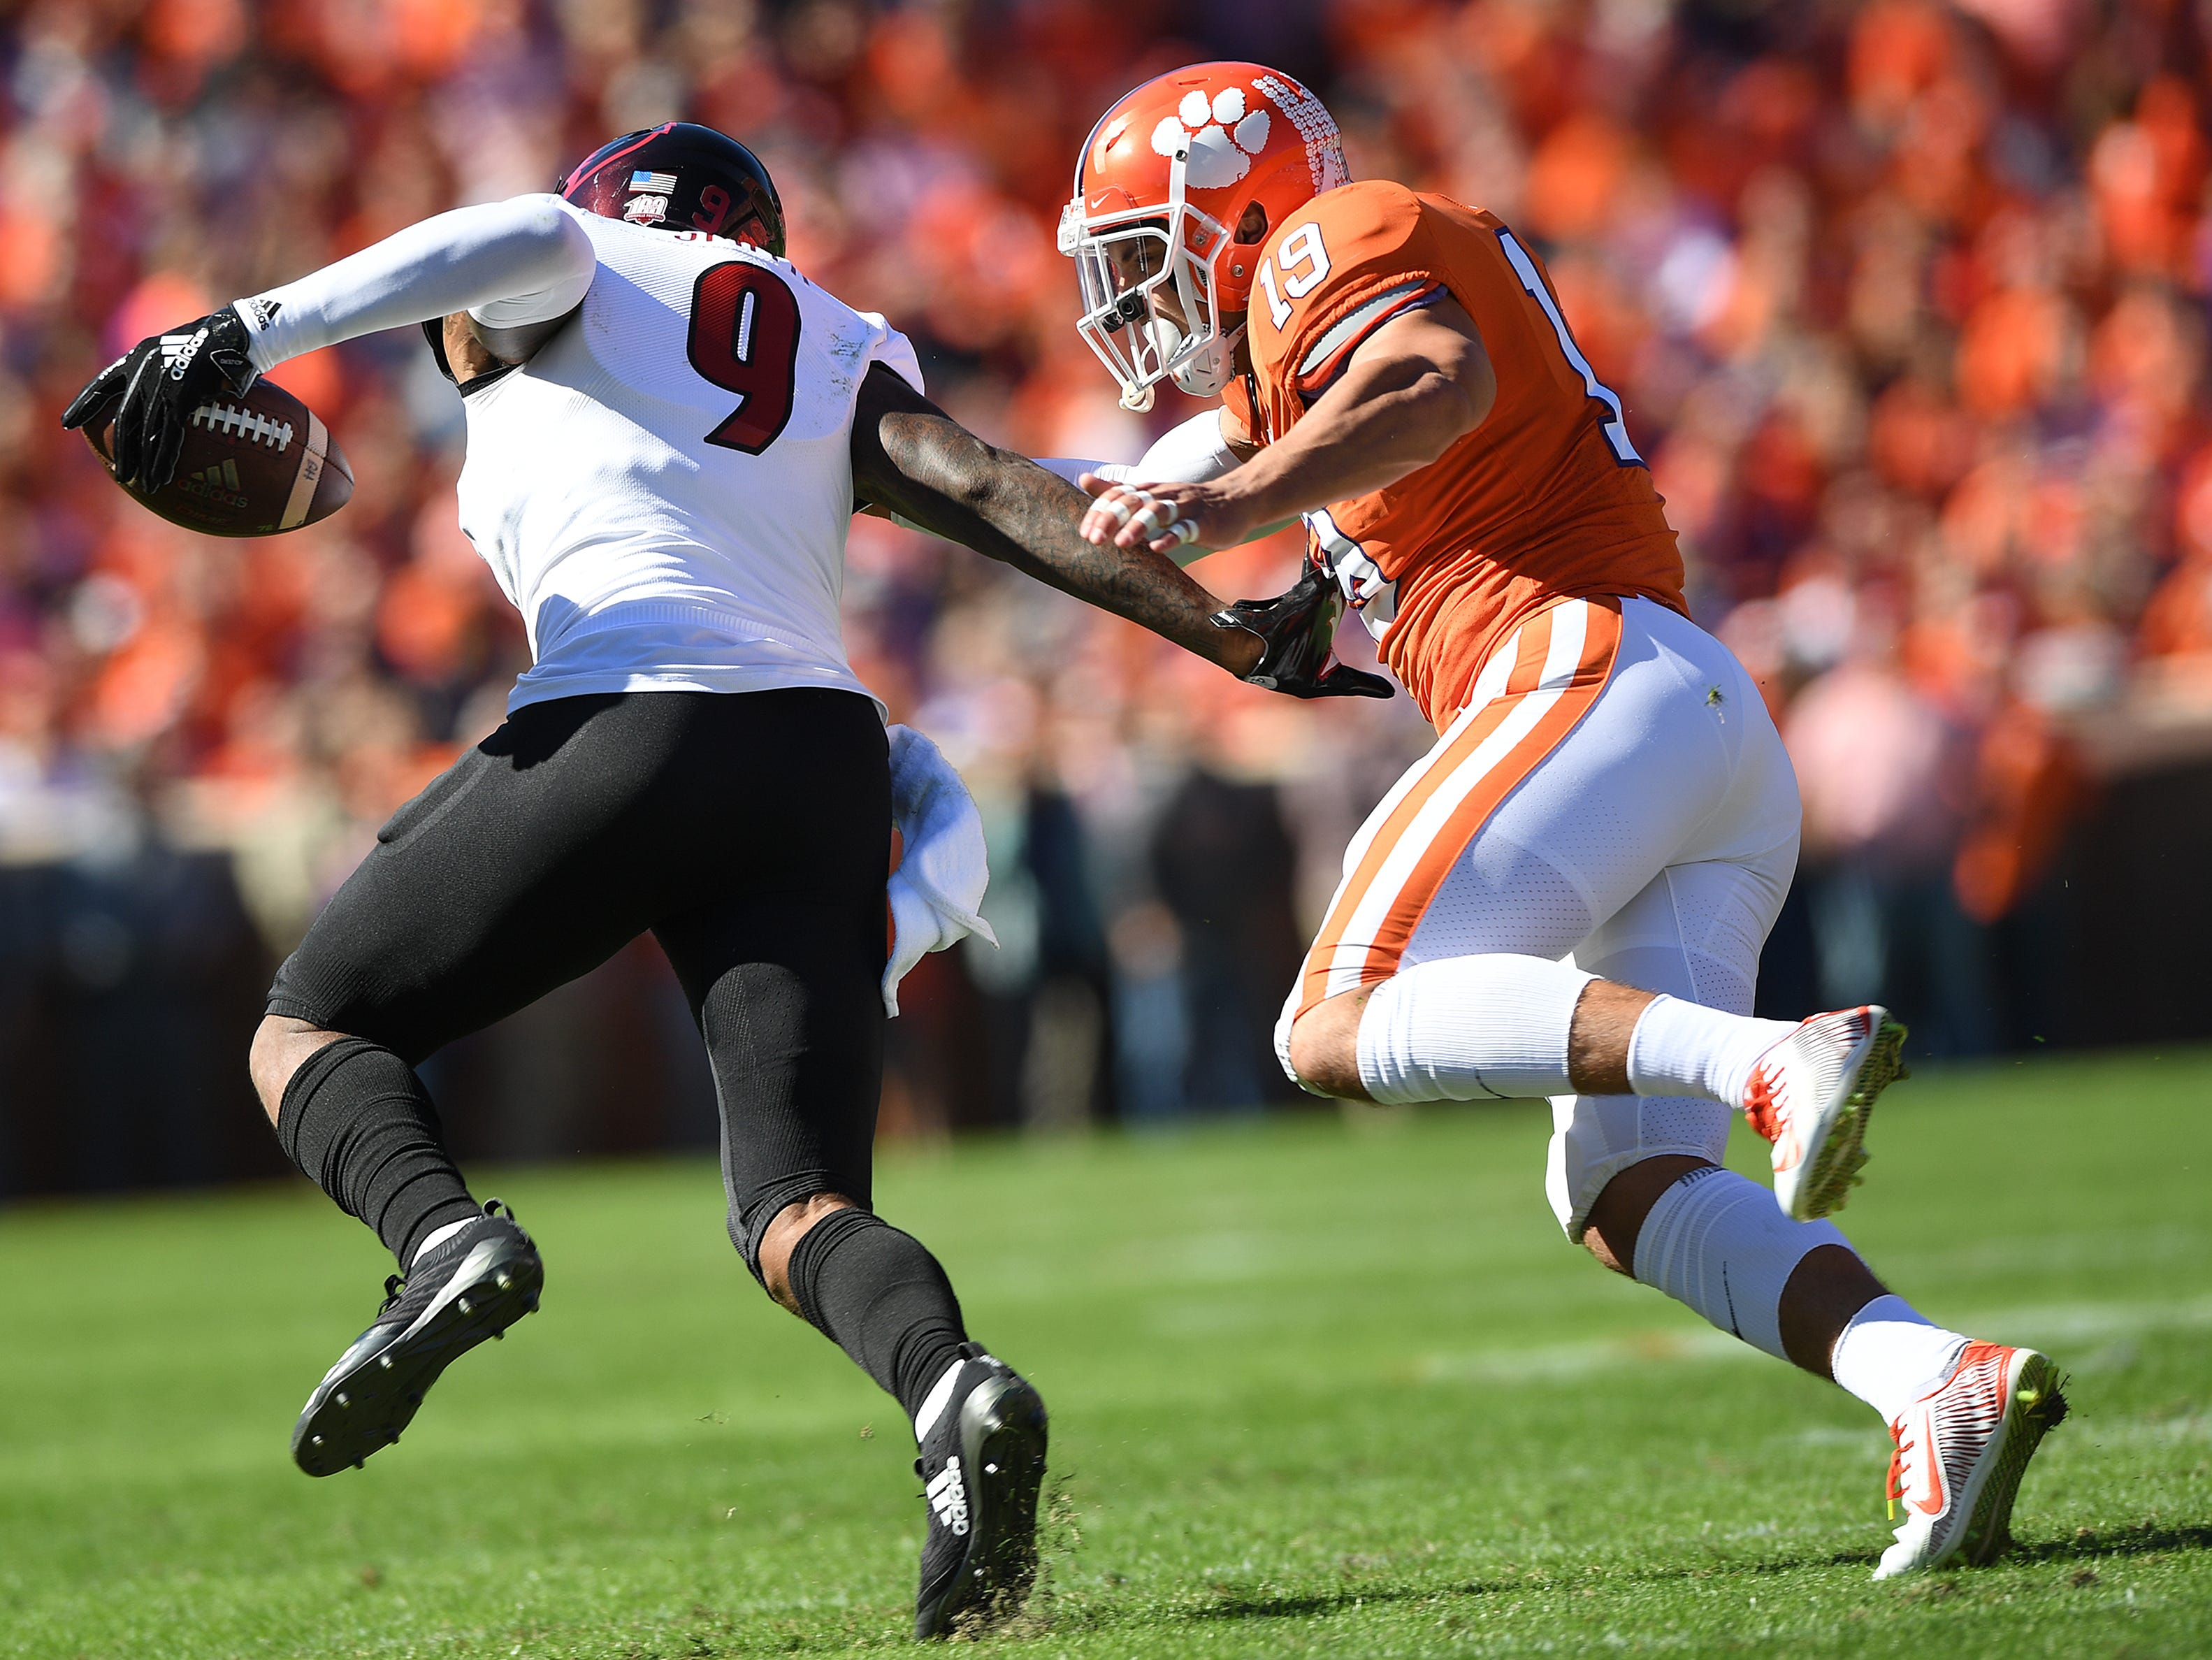 Clemson defensive back Tanner Muse (19) brings down Louisville wide receiver Jaylen Smith (9) during the 2nd quarter Saturday, November 3, 2018 at Clemson's Memorial Stadium.